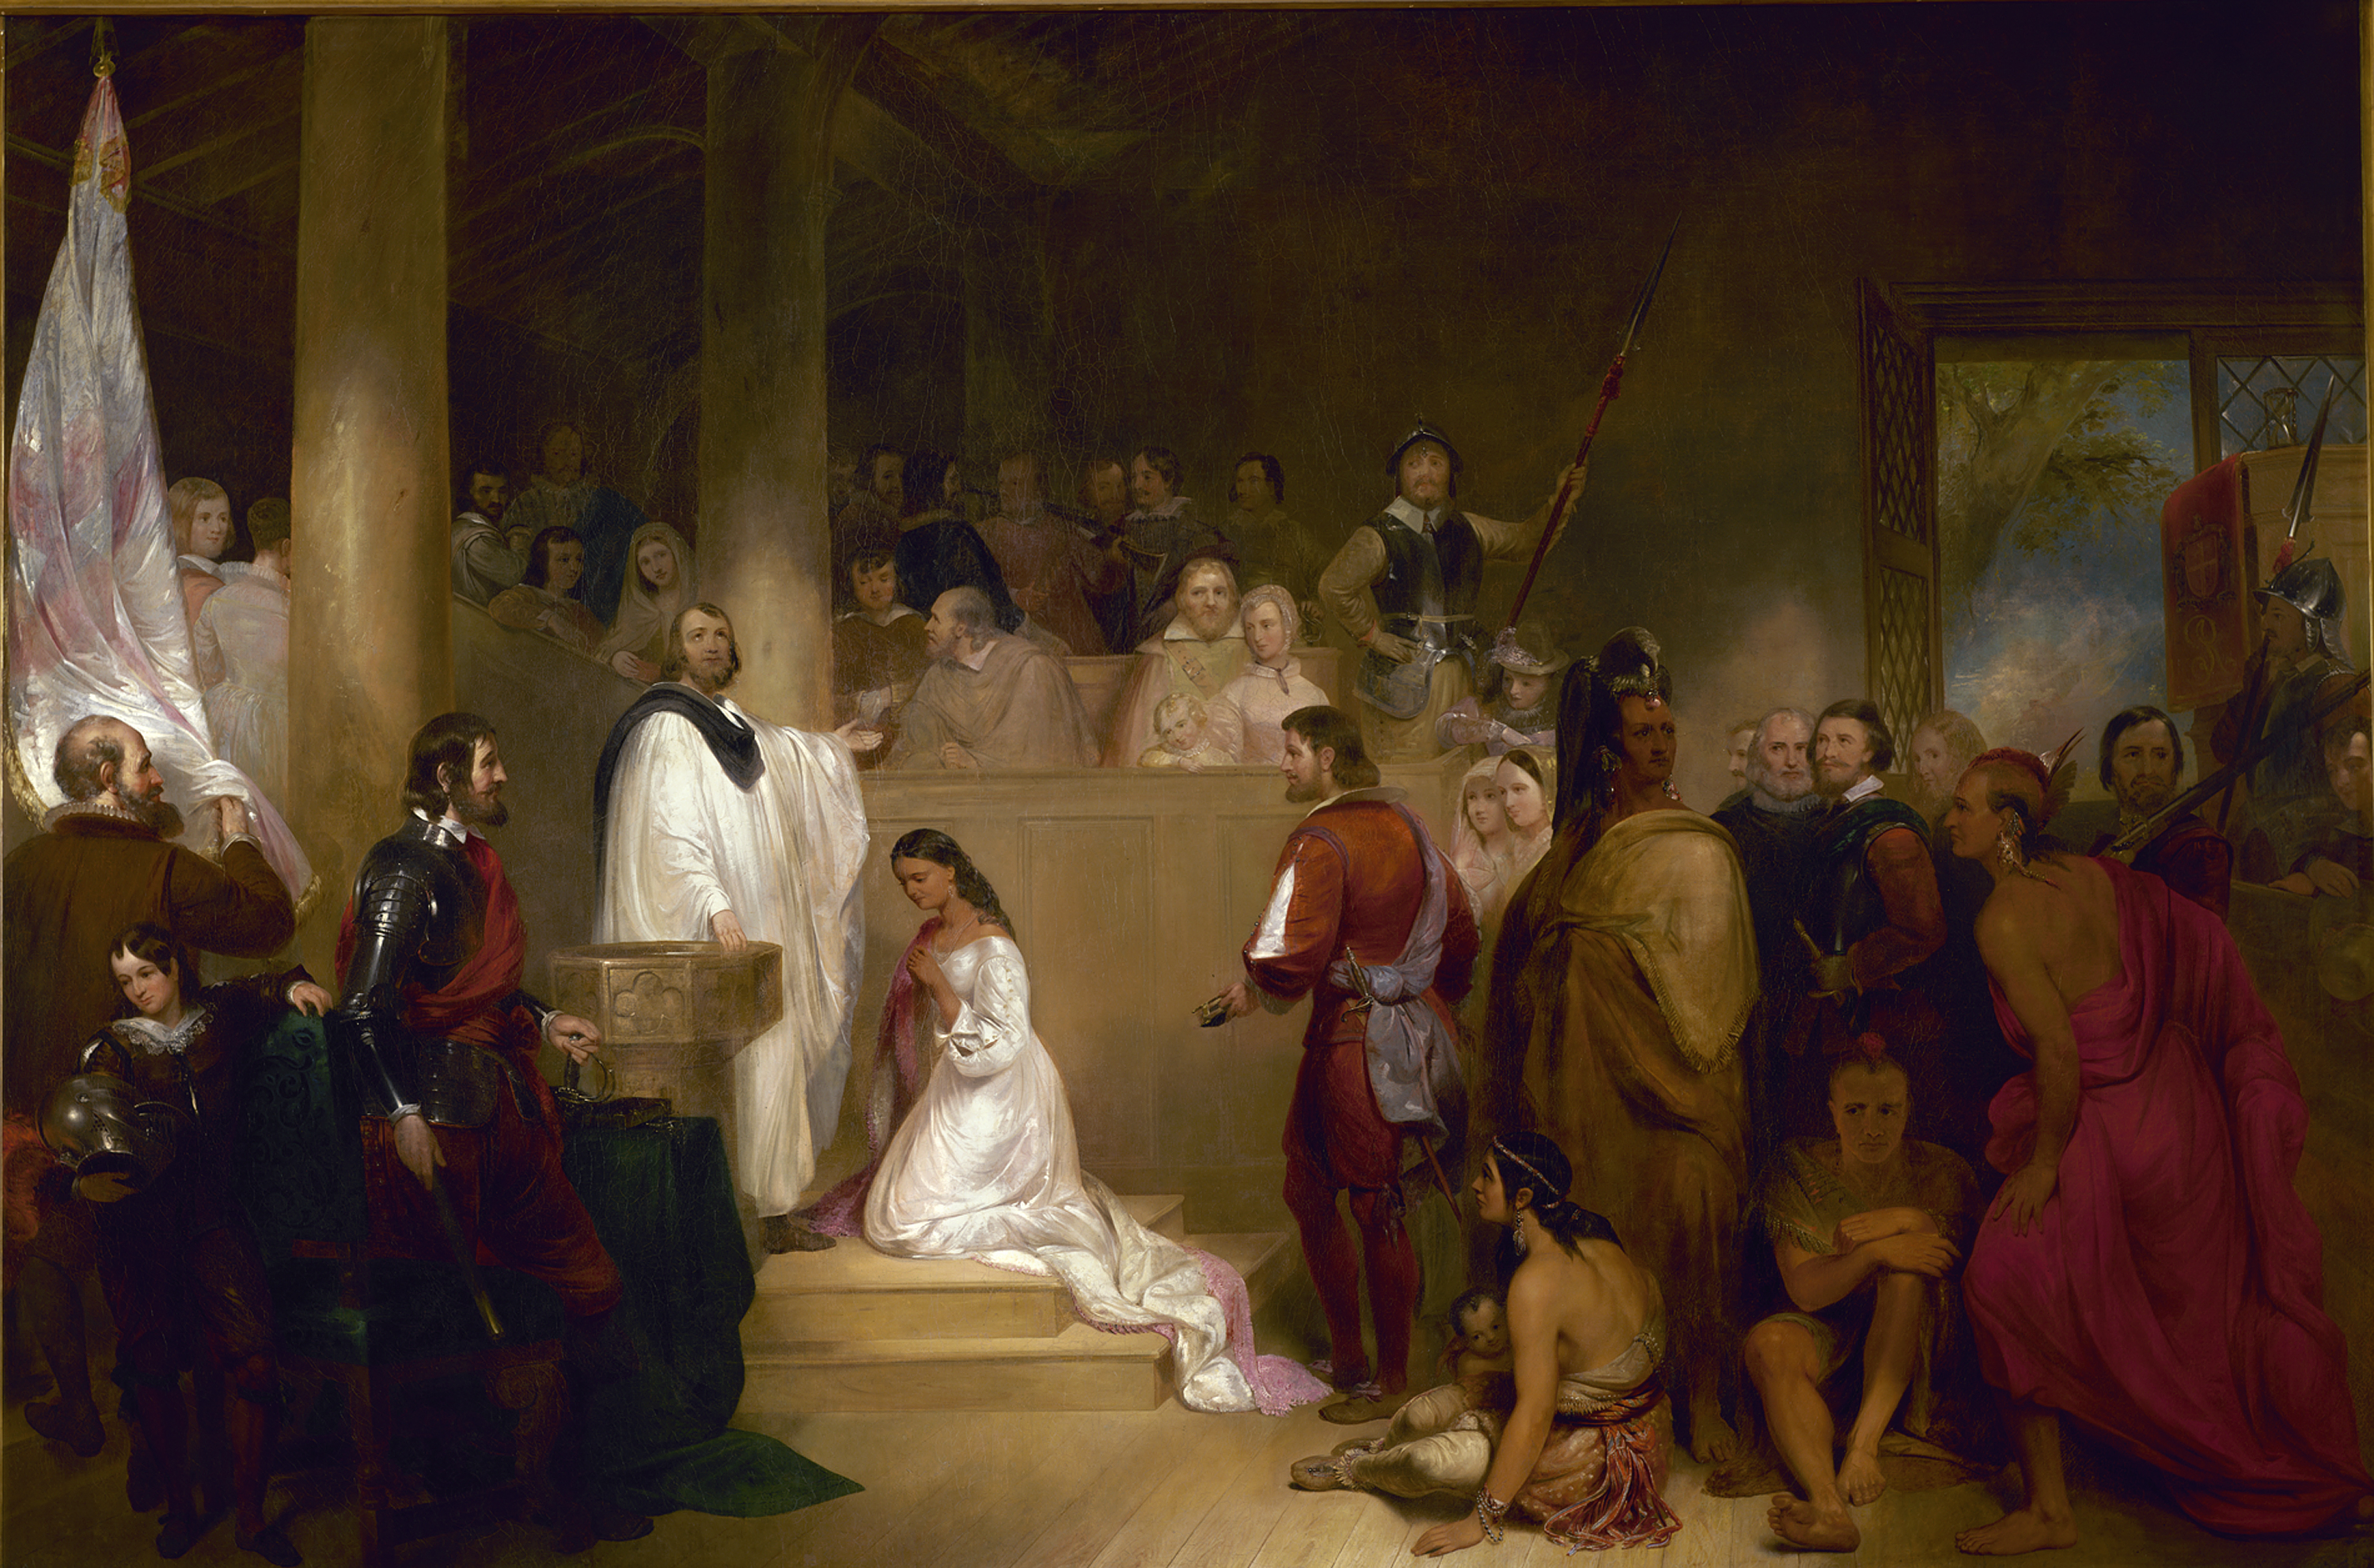 Chapman, John Gadsby. Baptism of Pocahontas. United States, Washington, D.C. Capitol rotunda, 1840. Oil on canvas.